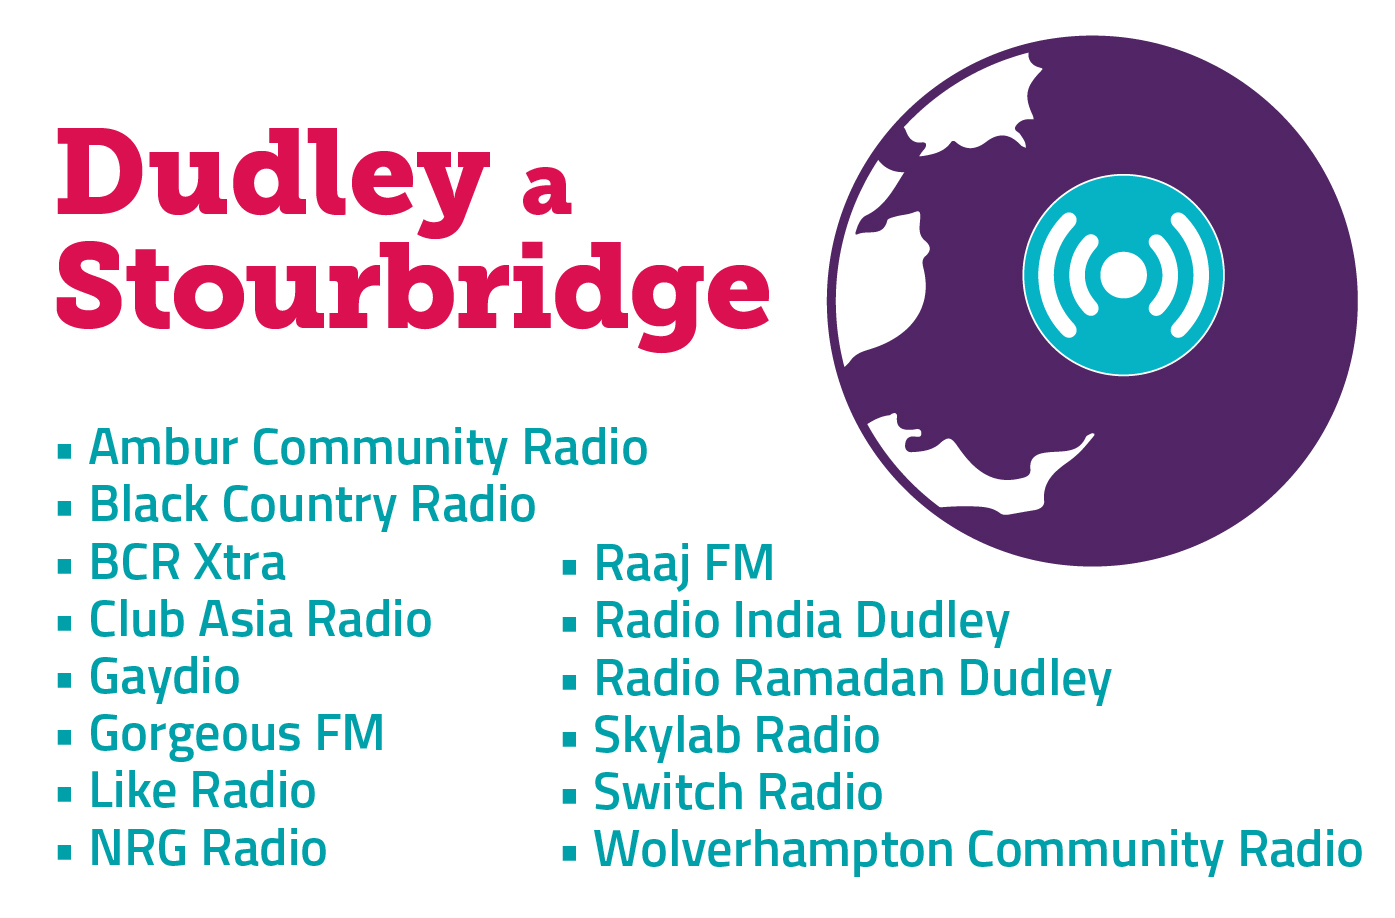 Stations launching in Dudley and Stourbridge.